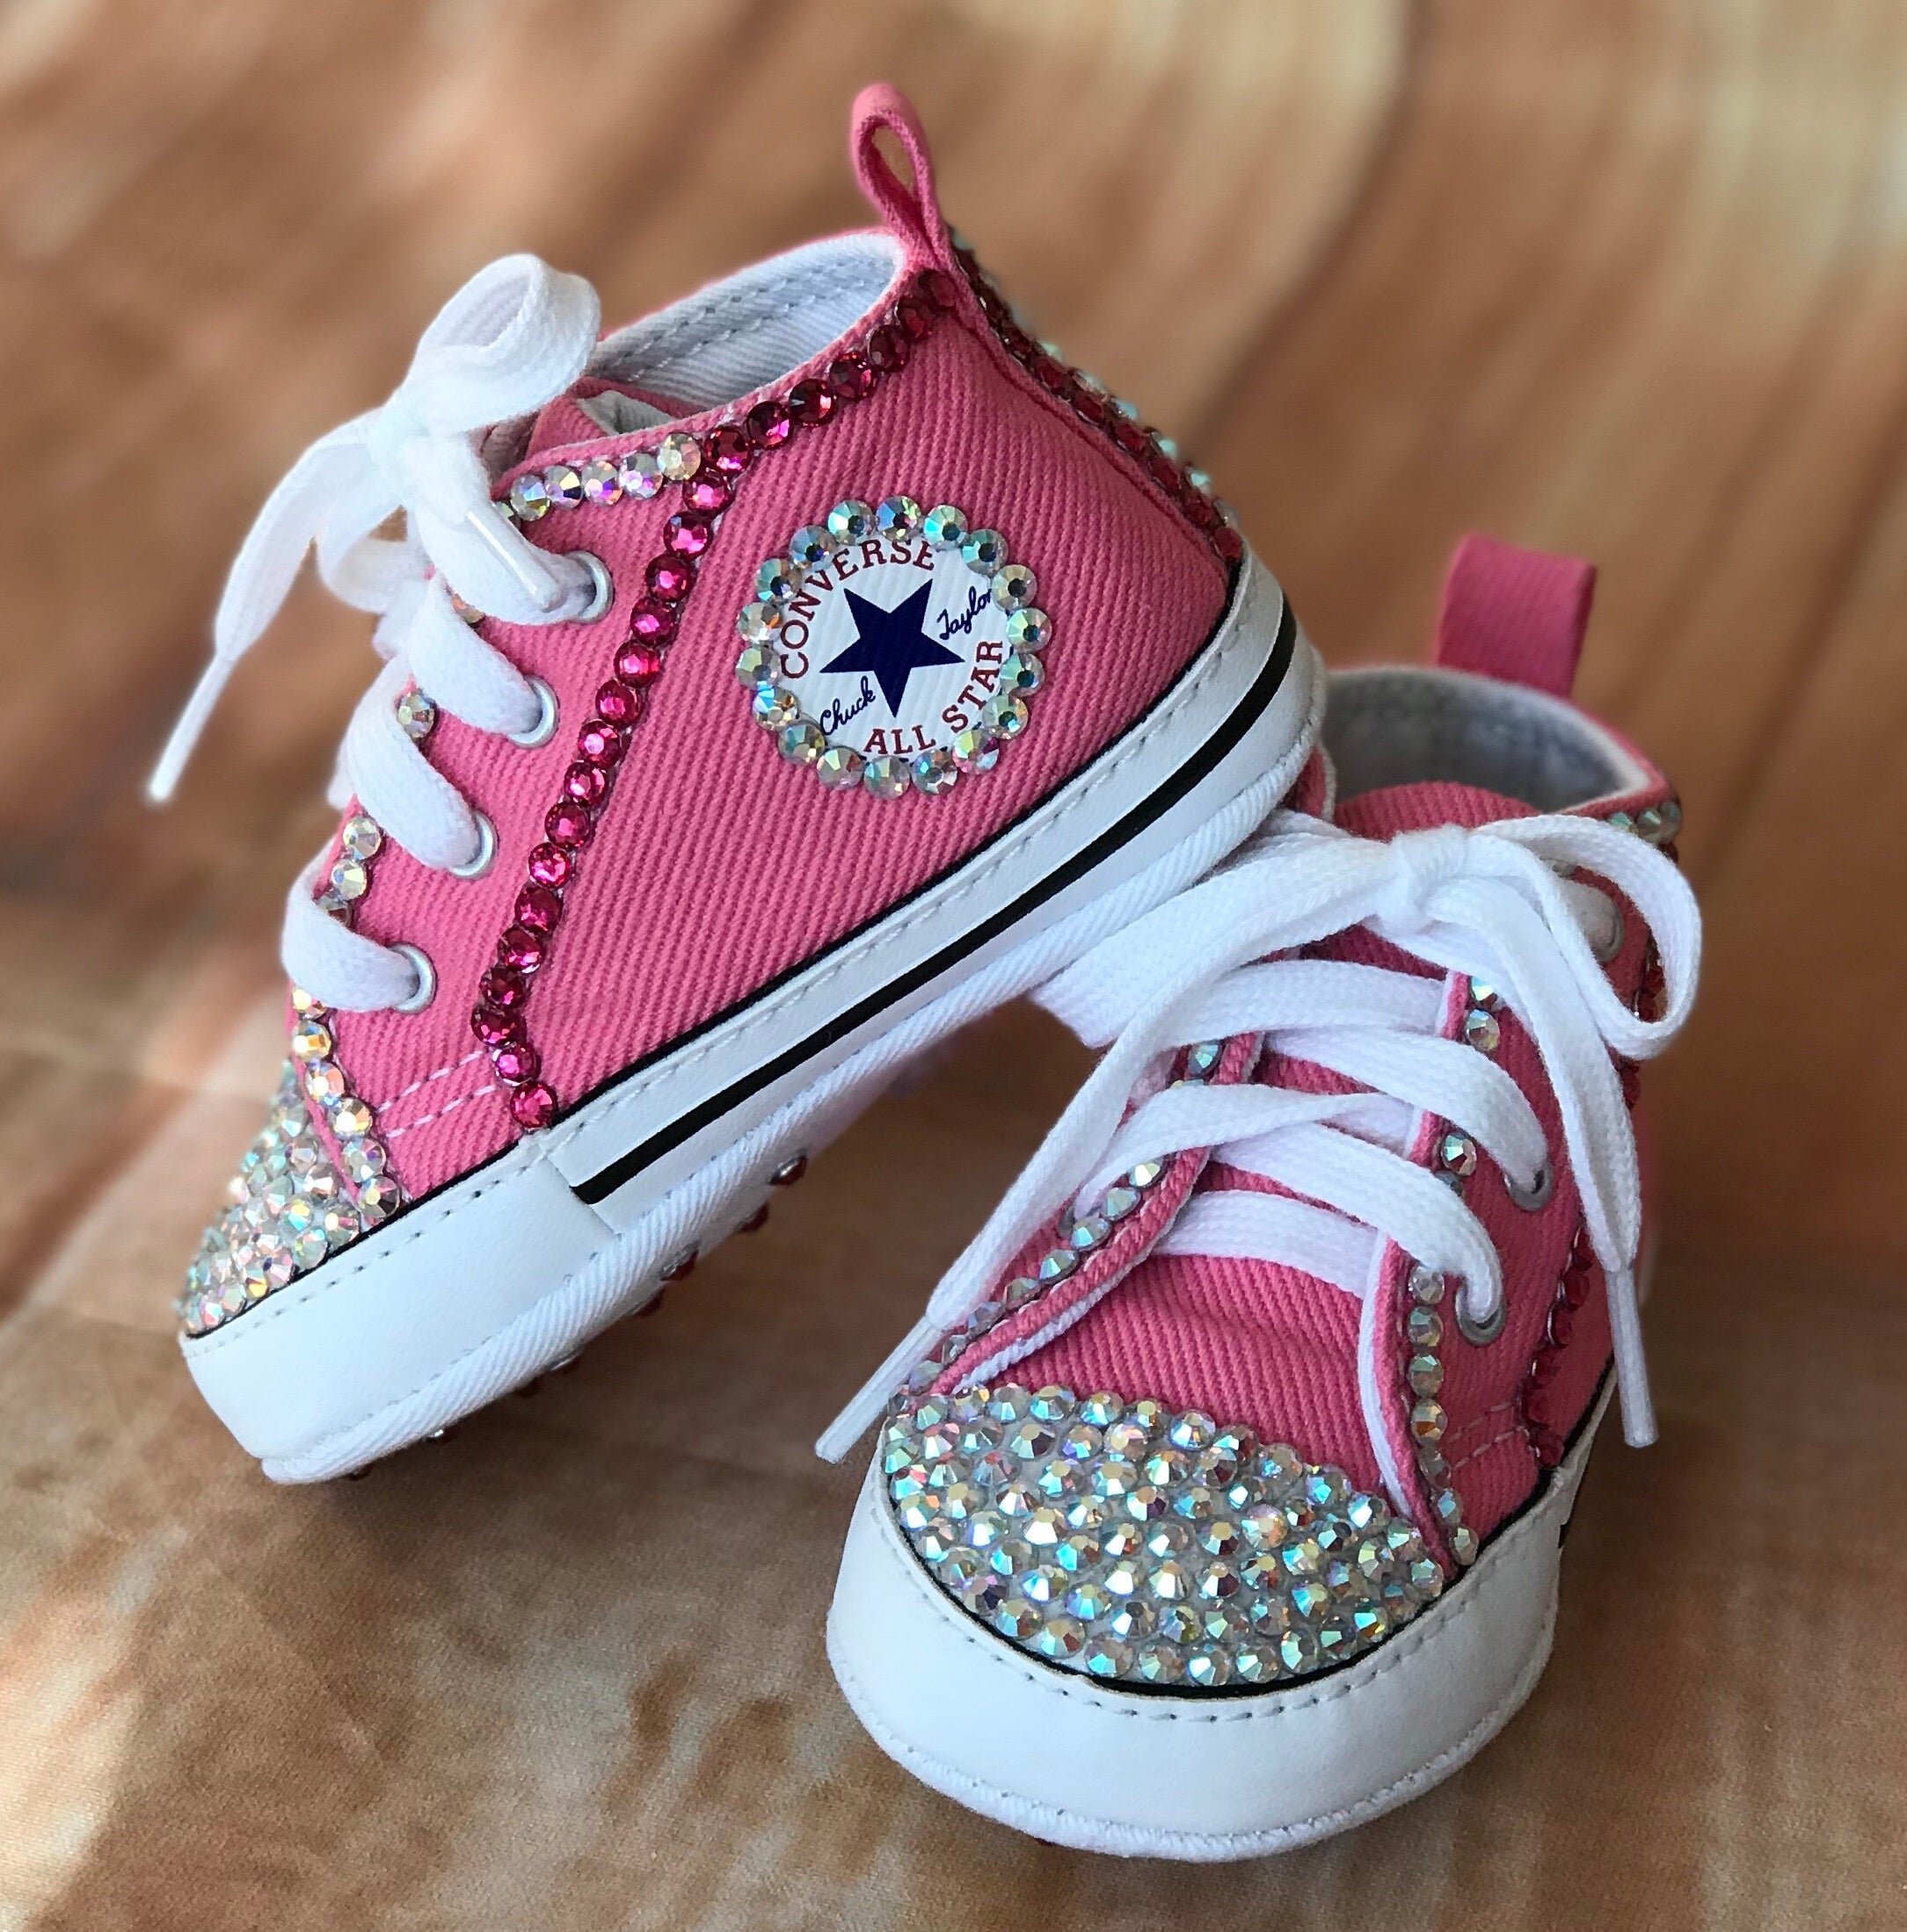 Blinged Pink Baby Converse Sneakers, Infants and Toddler Size 1-3